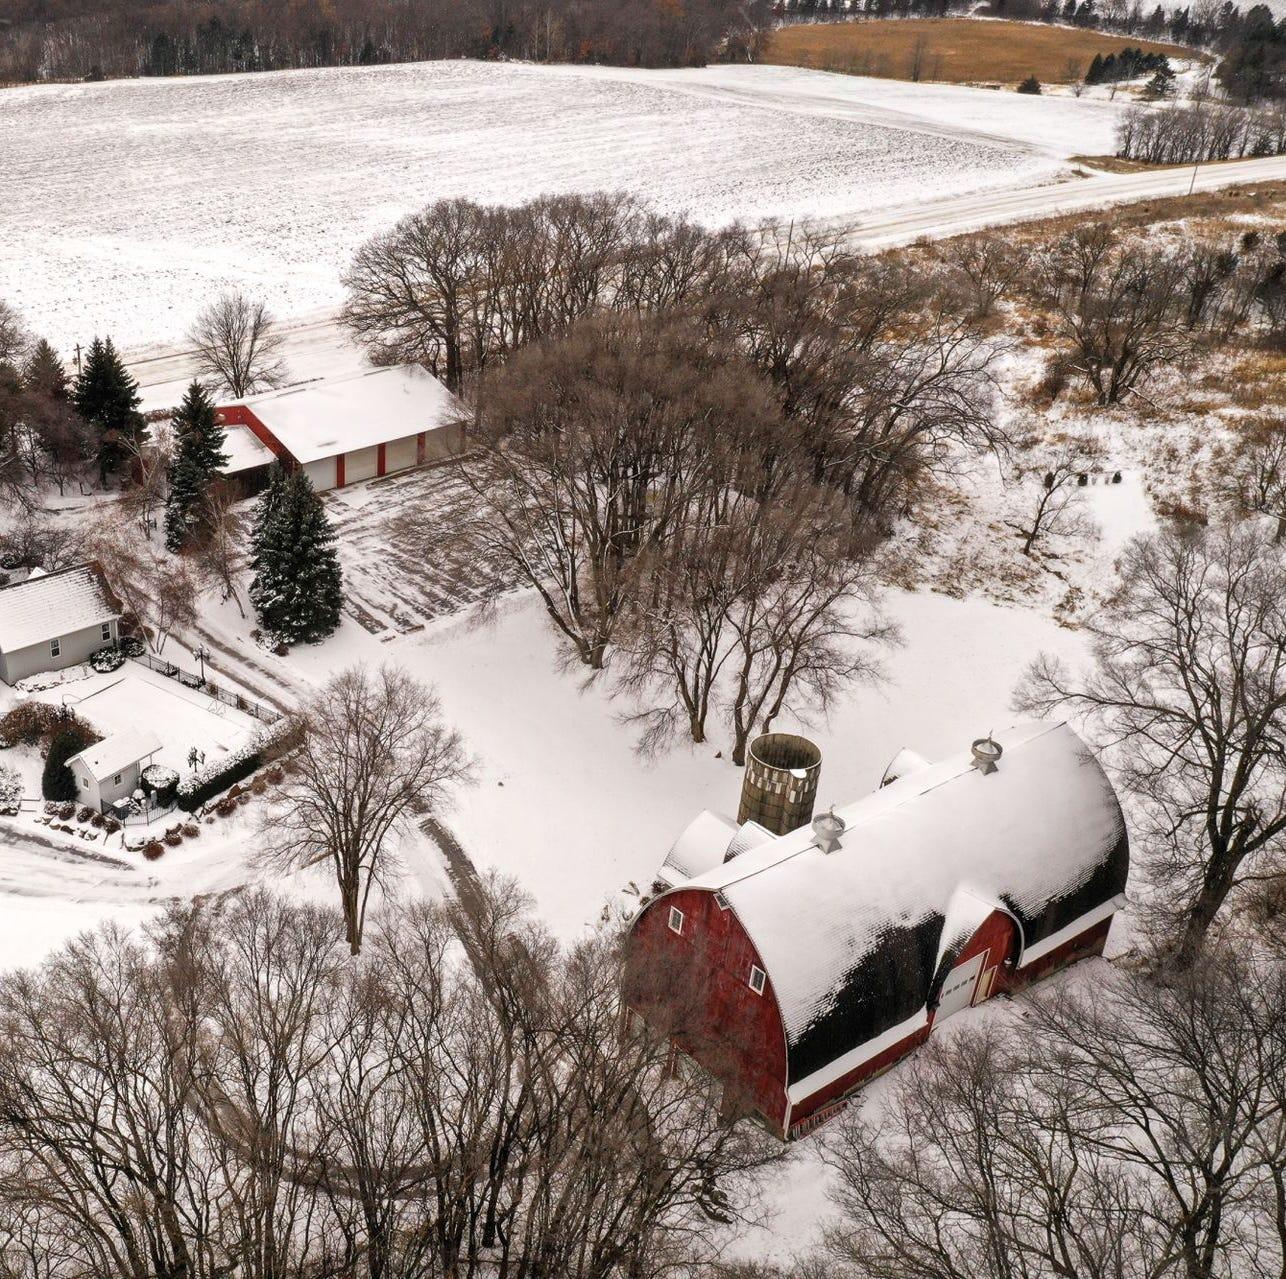 Mansion on the market: Elegant home offers 10 acres of farmland